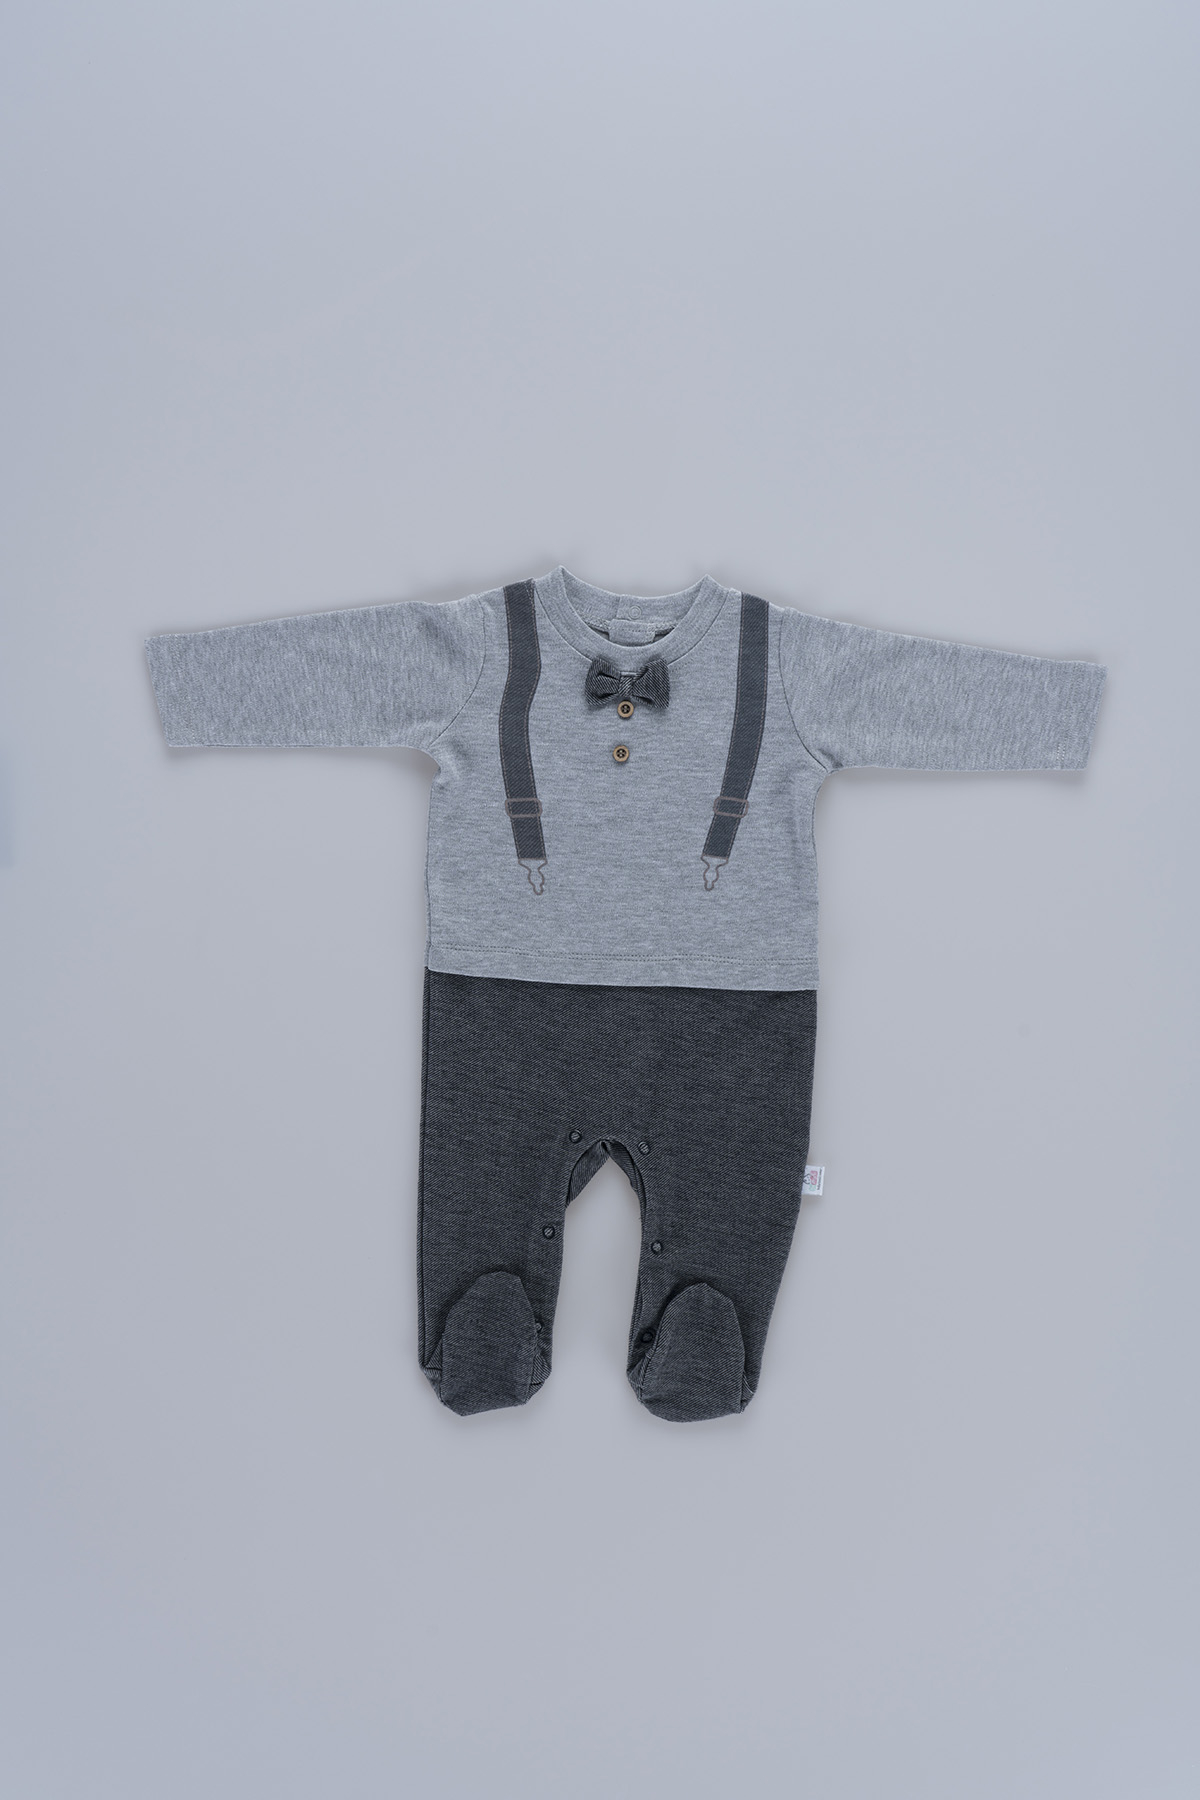 Bow-Tie Detailed Baby Boy Shoulder Straps Jumpsuit 60391 Grey